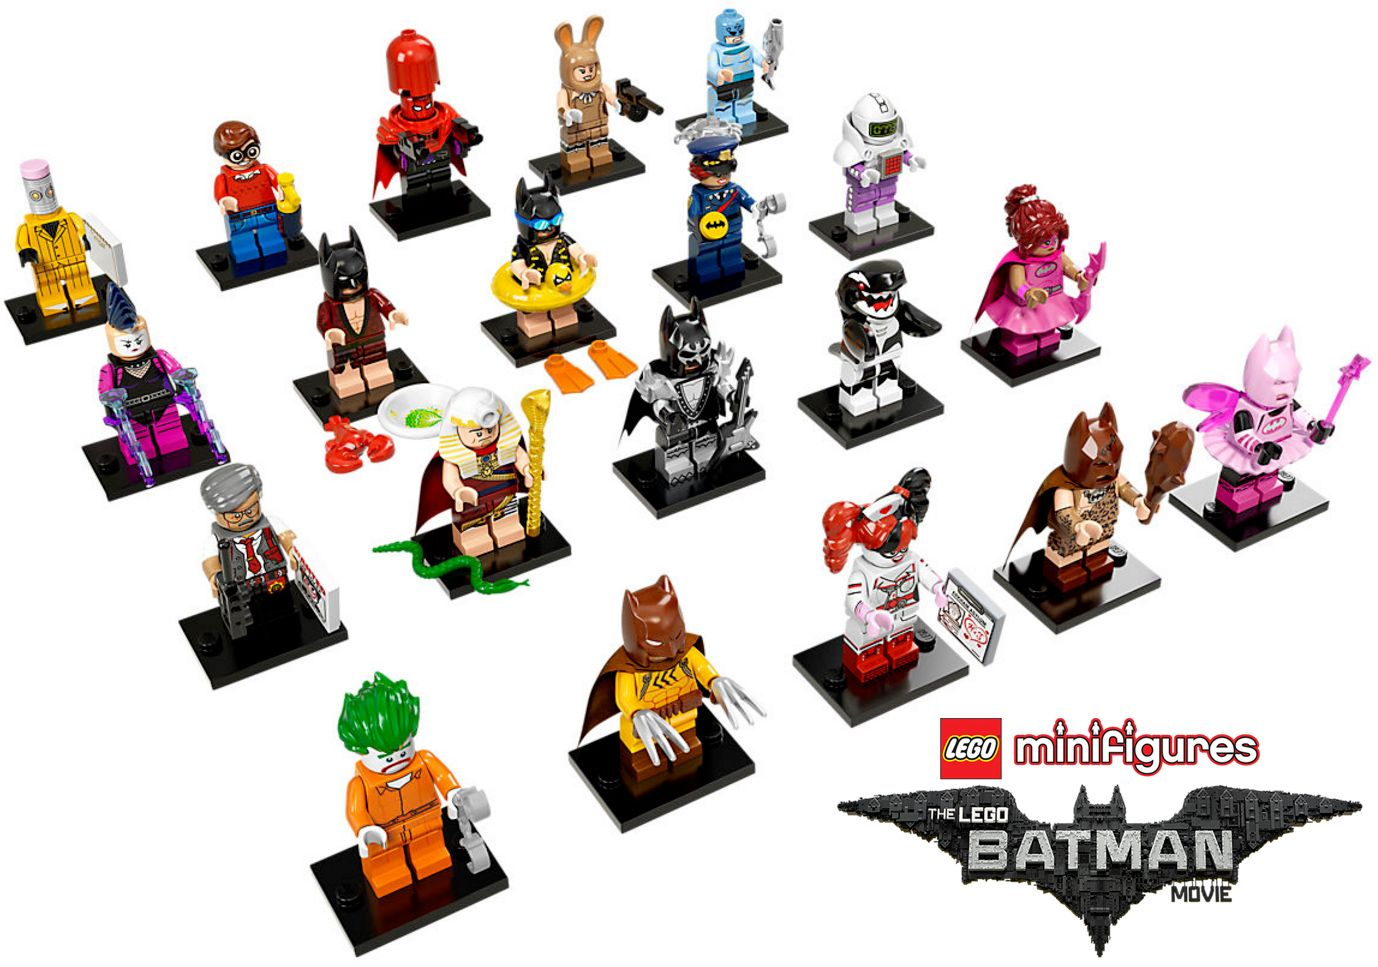 LEGO-Minifigures-Lego-Batman-Movie-Series-13